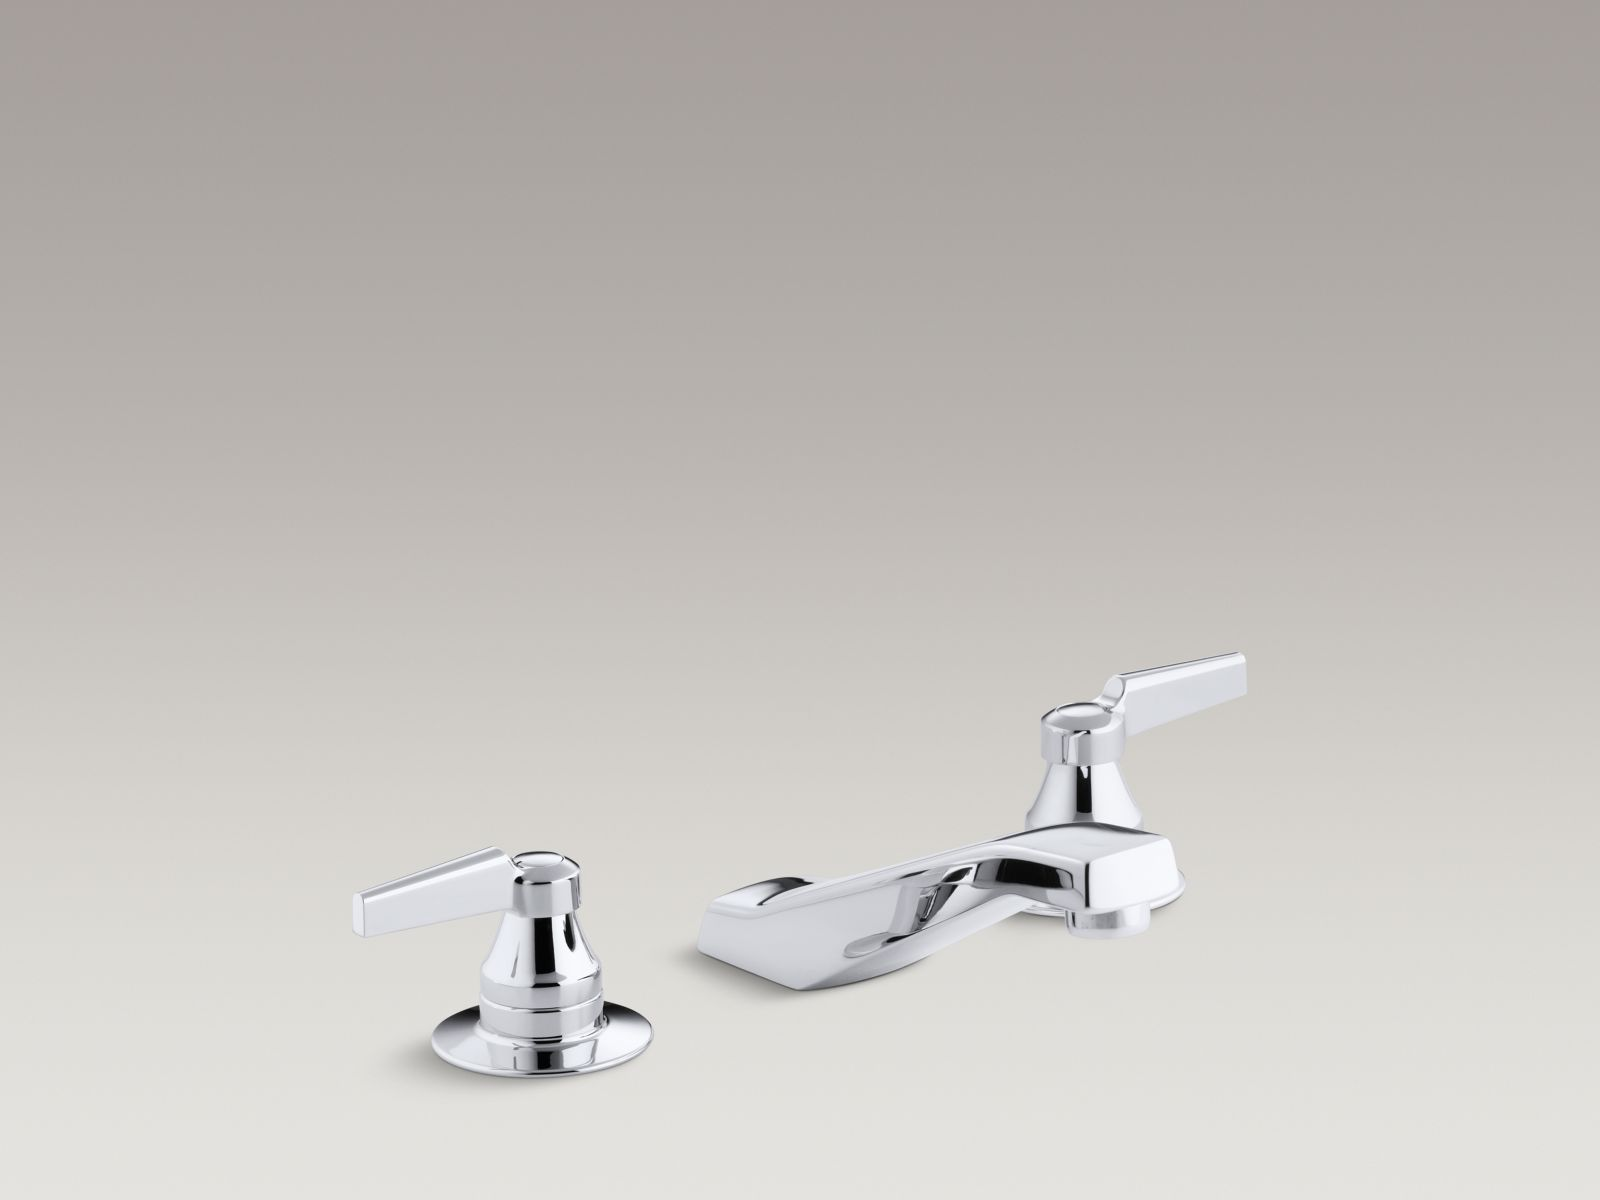 Kohler K-7307-KE-CP Triton Widespread Handle-less Low-arc Commercial Bathroom Faucet with Rigid Connections and Vandal-resistant Aerator Polished Chrome